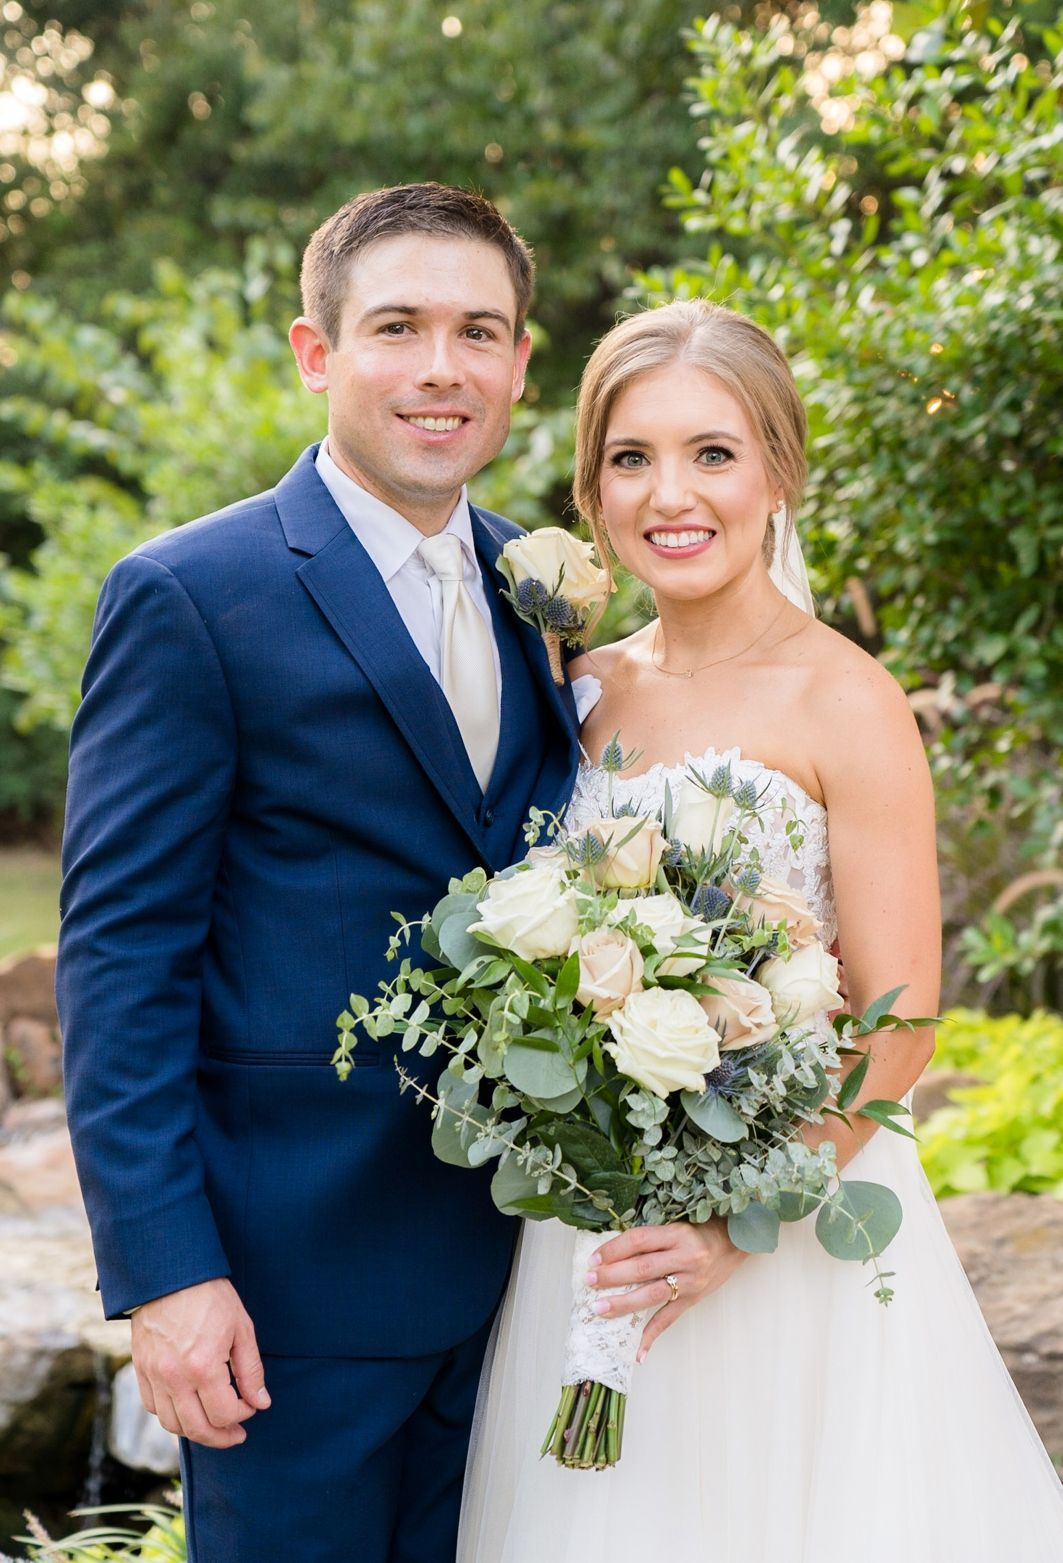 bride and groom photo outdoor at the springs events wedding venue